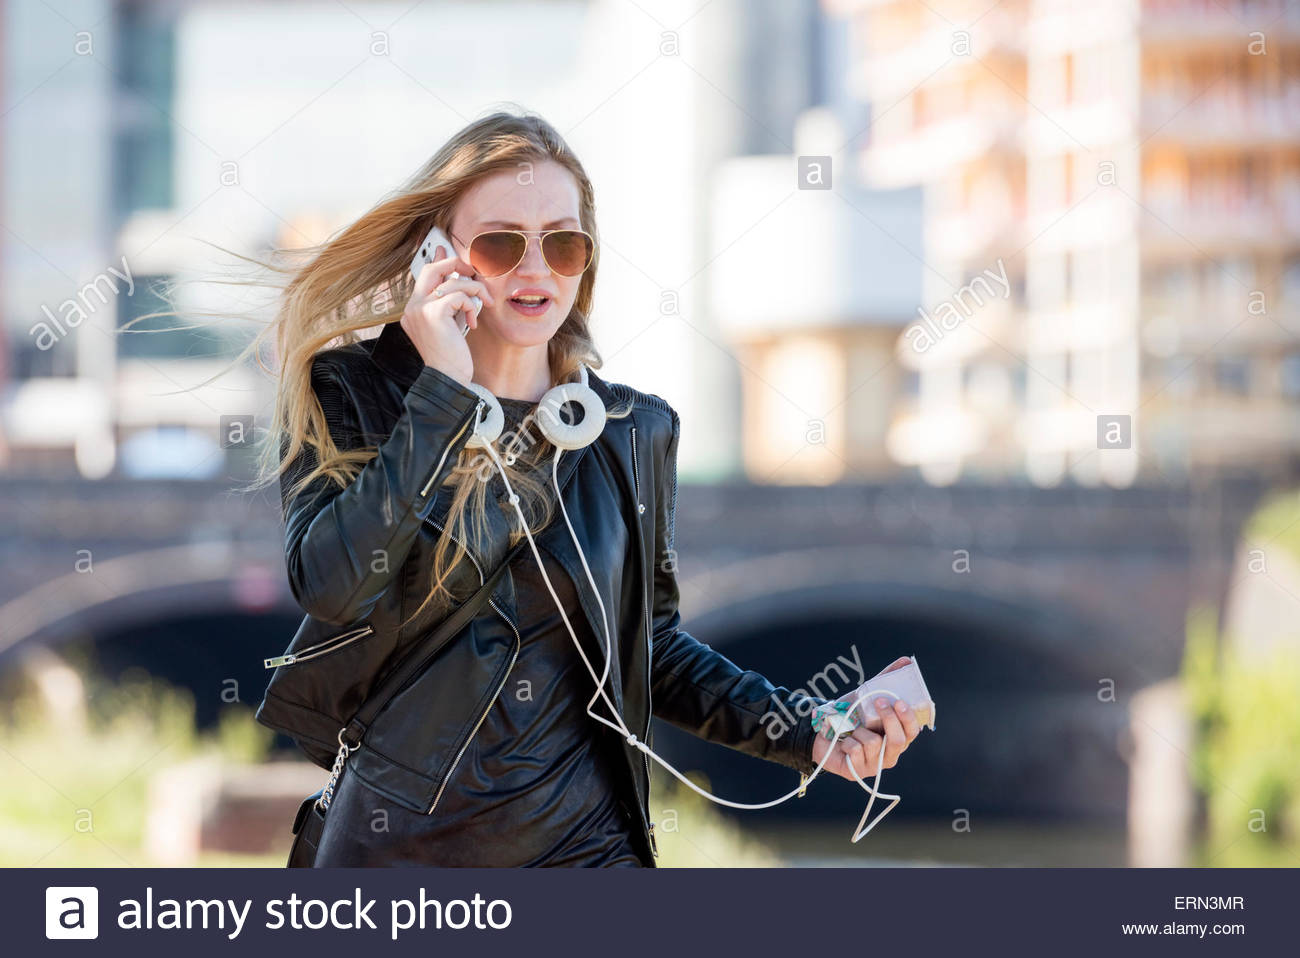 Young blonde woman talking on a mobile phone whilst walking down the street in Cardiff, Wales, UK. - Stock Image